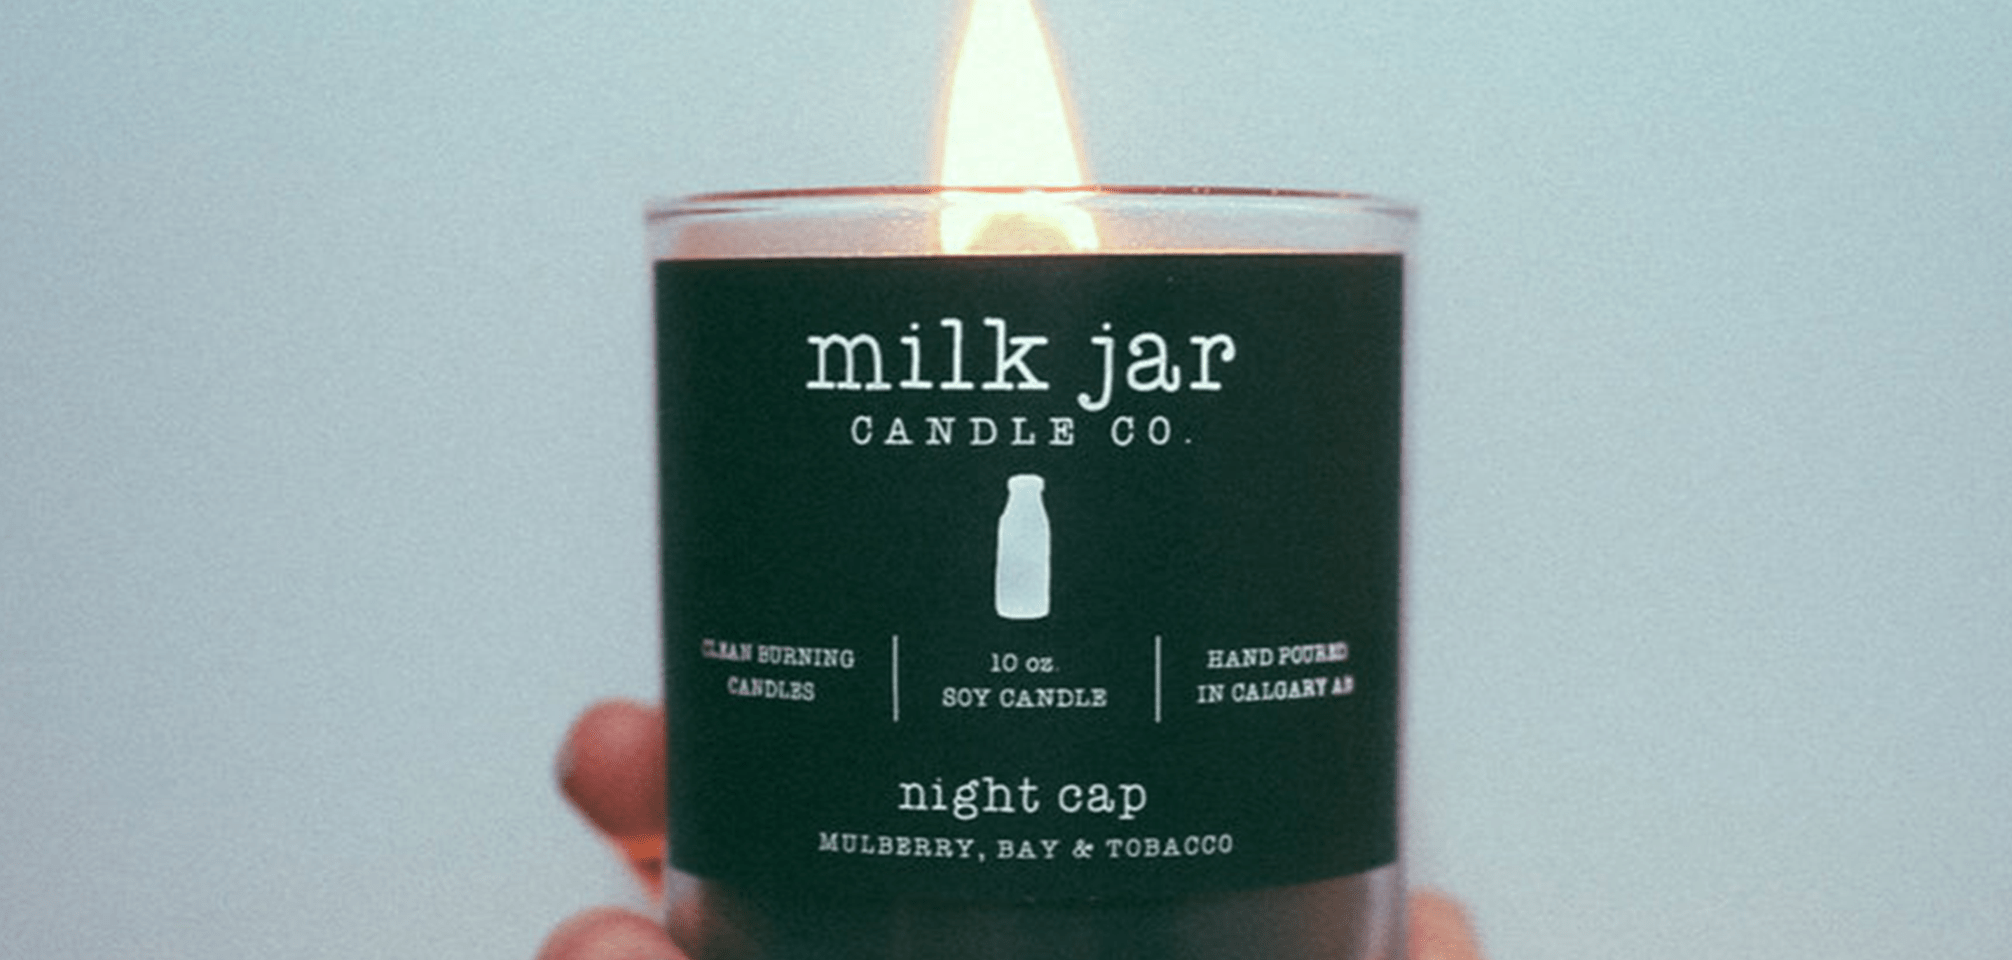 Proceeds from Candles go to special needs school